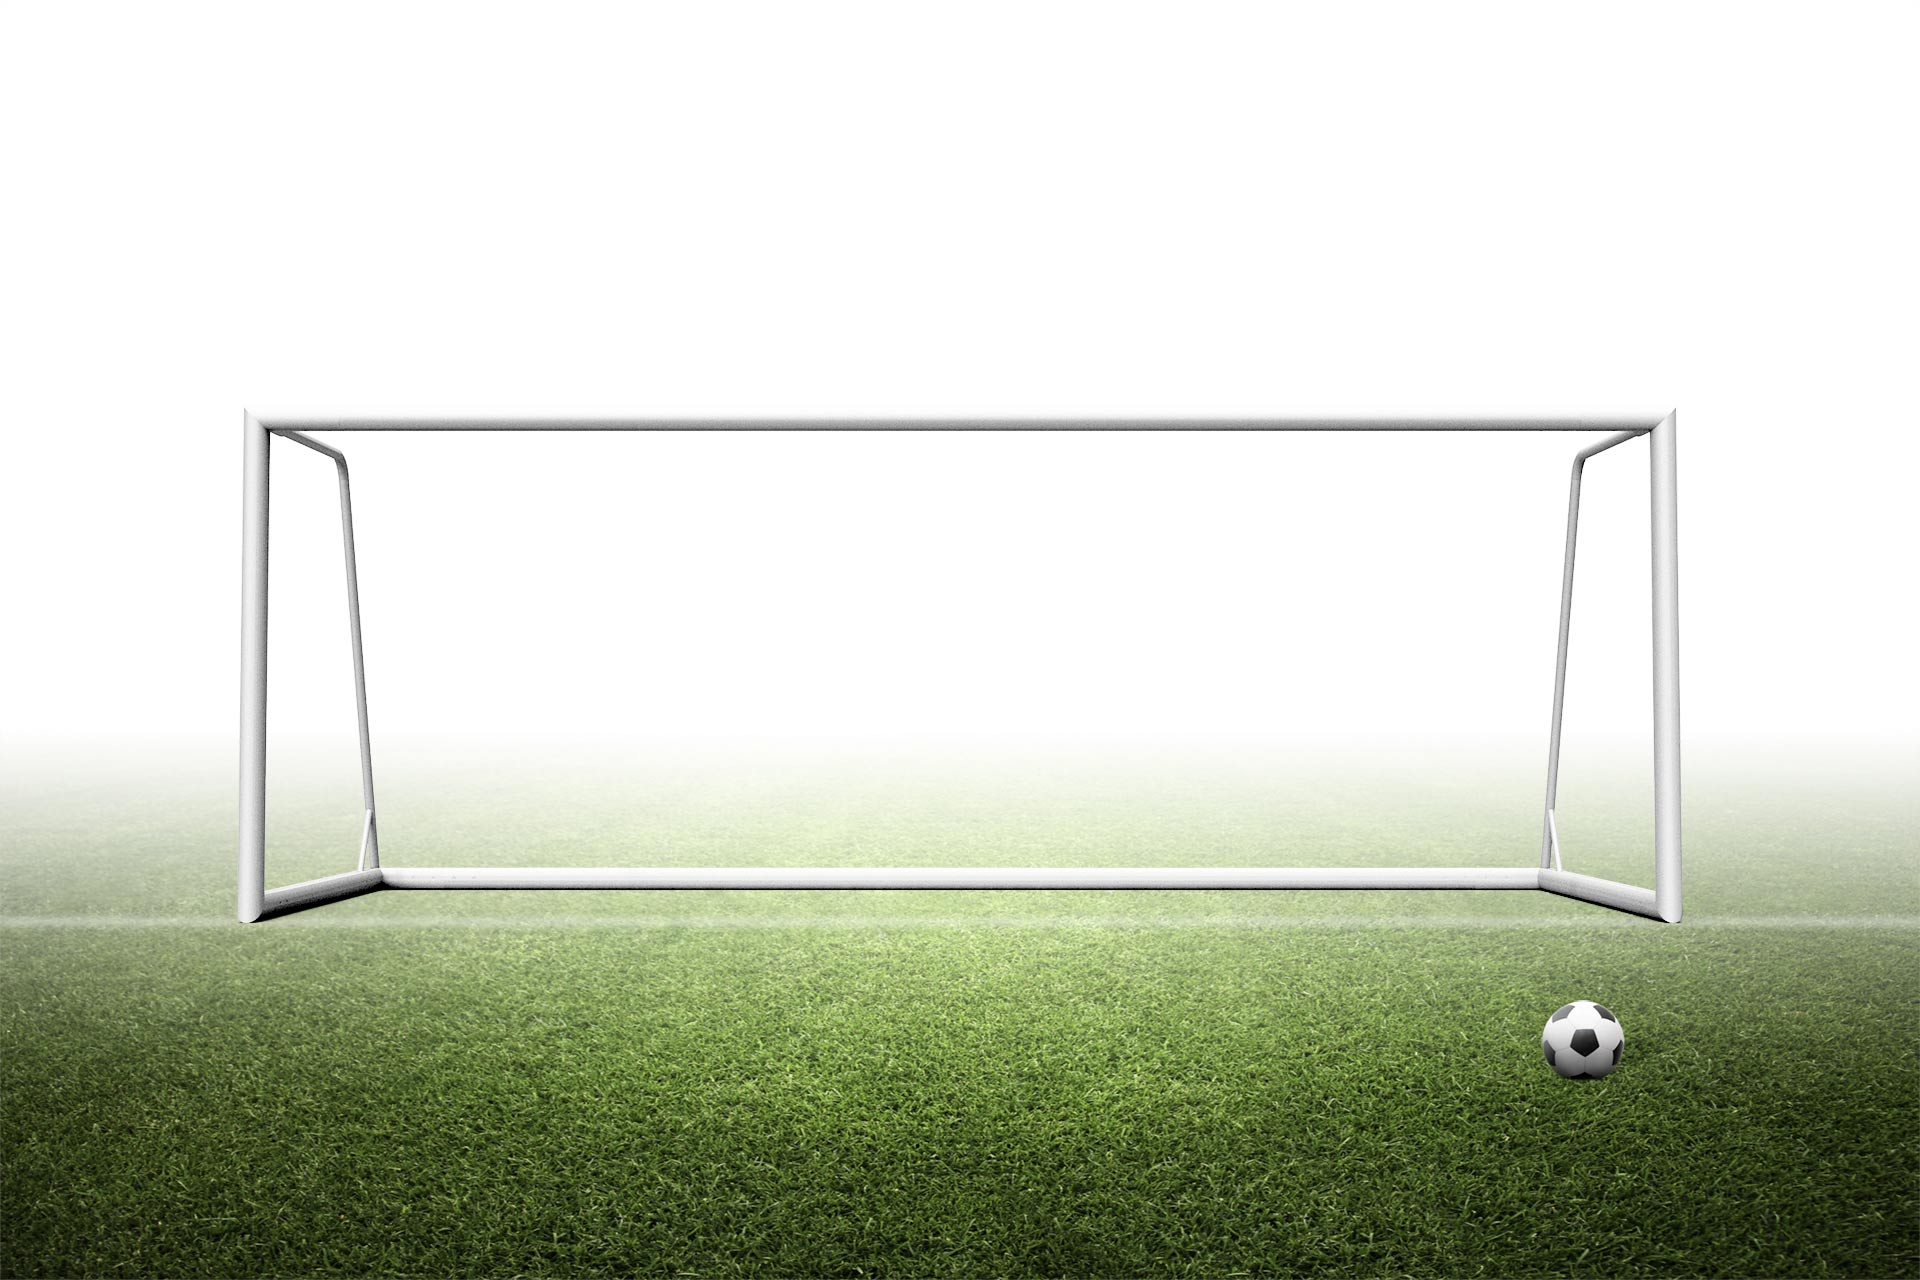 6.5'H x 18.5'W Portable junior soccer goal